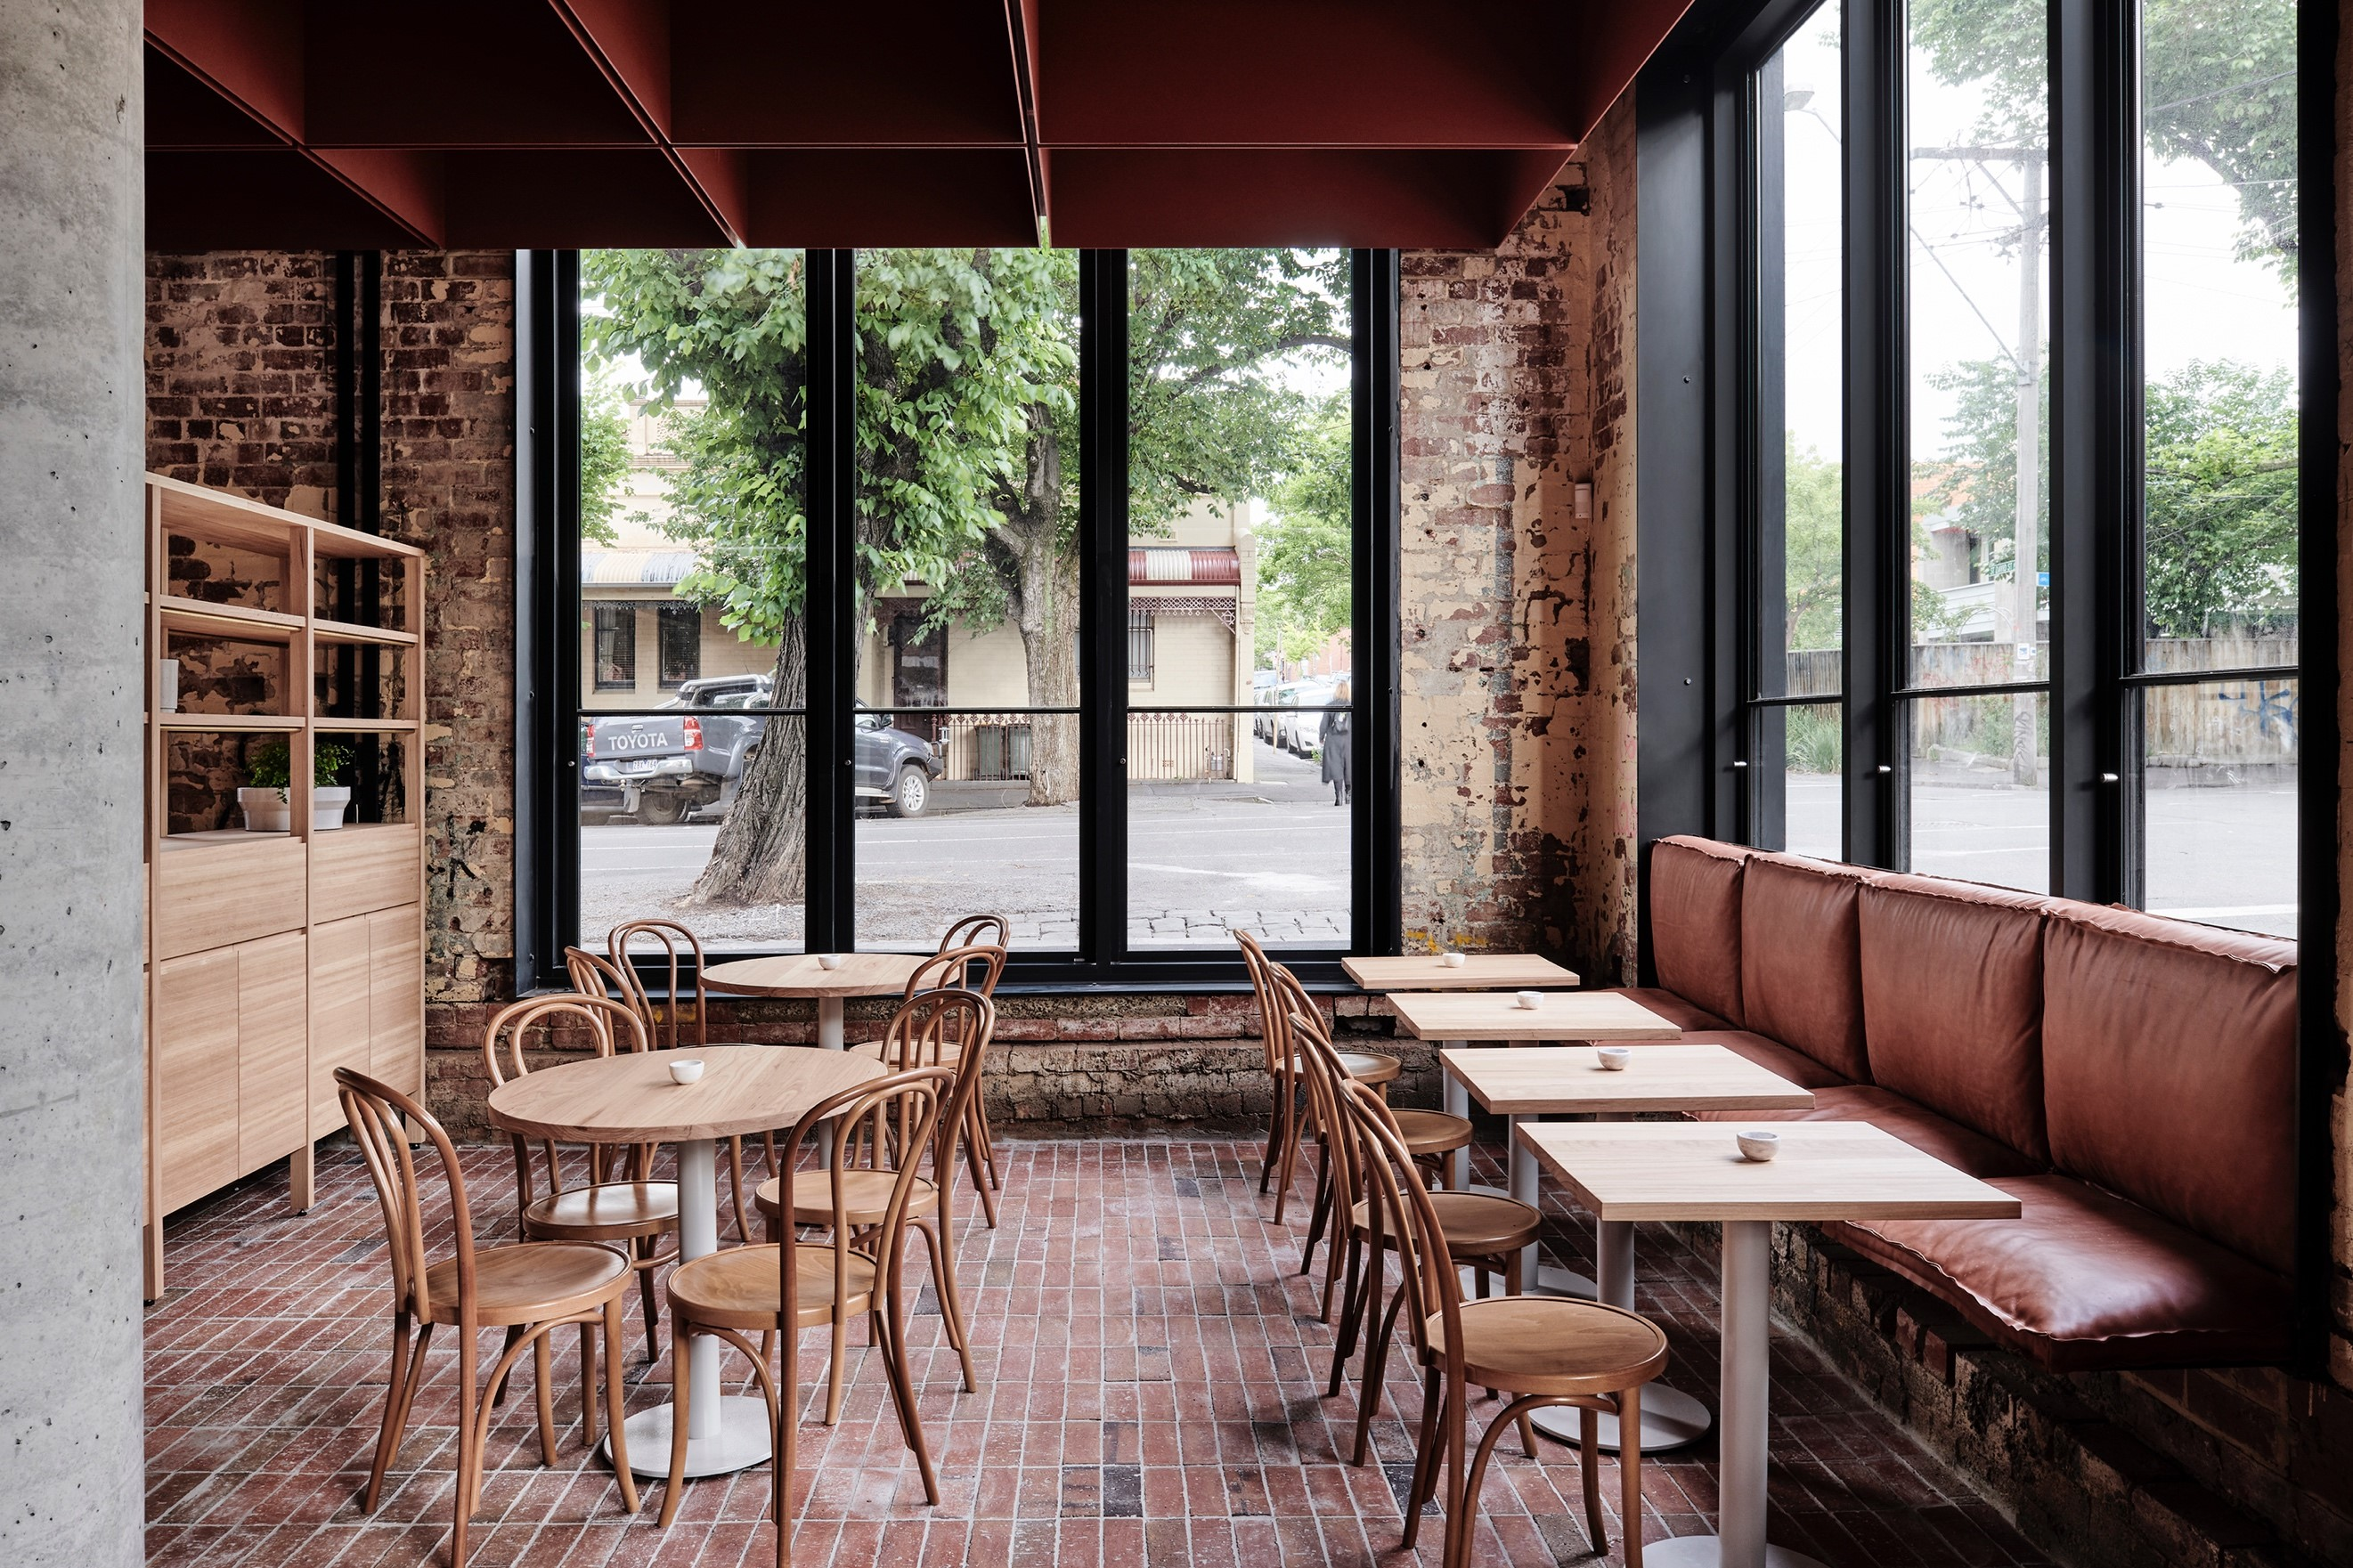 In Melbourne's Bustling Northside Suburb Of Fitzroy Sits Ritz&ghougassian's Masterfully Designed Bentwood Café